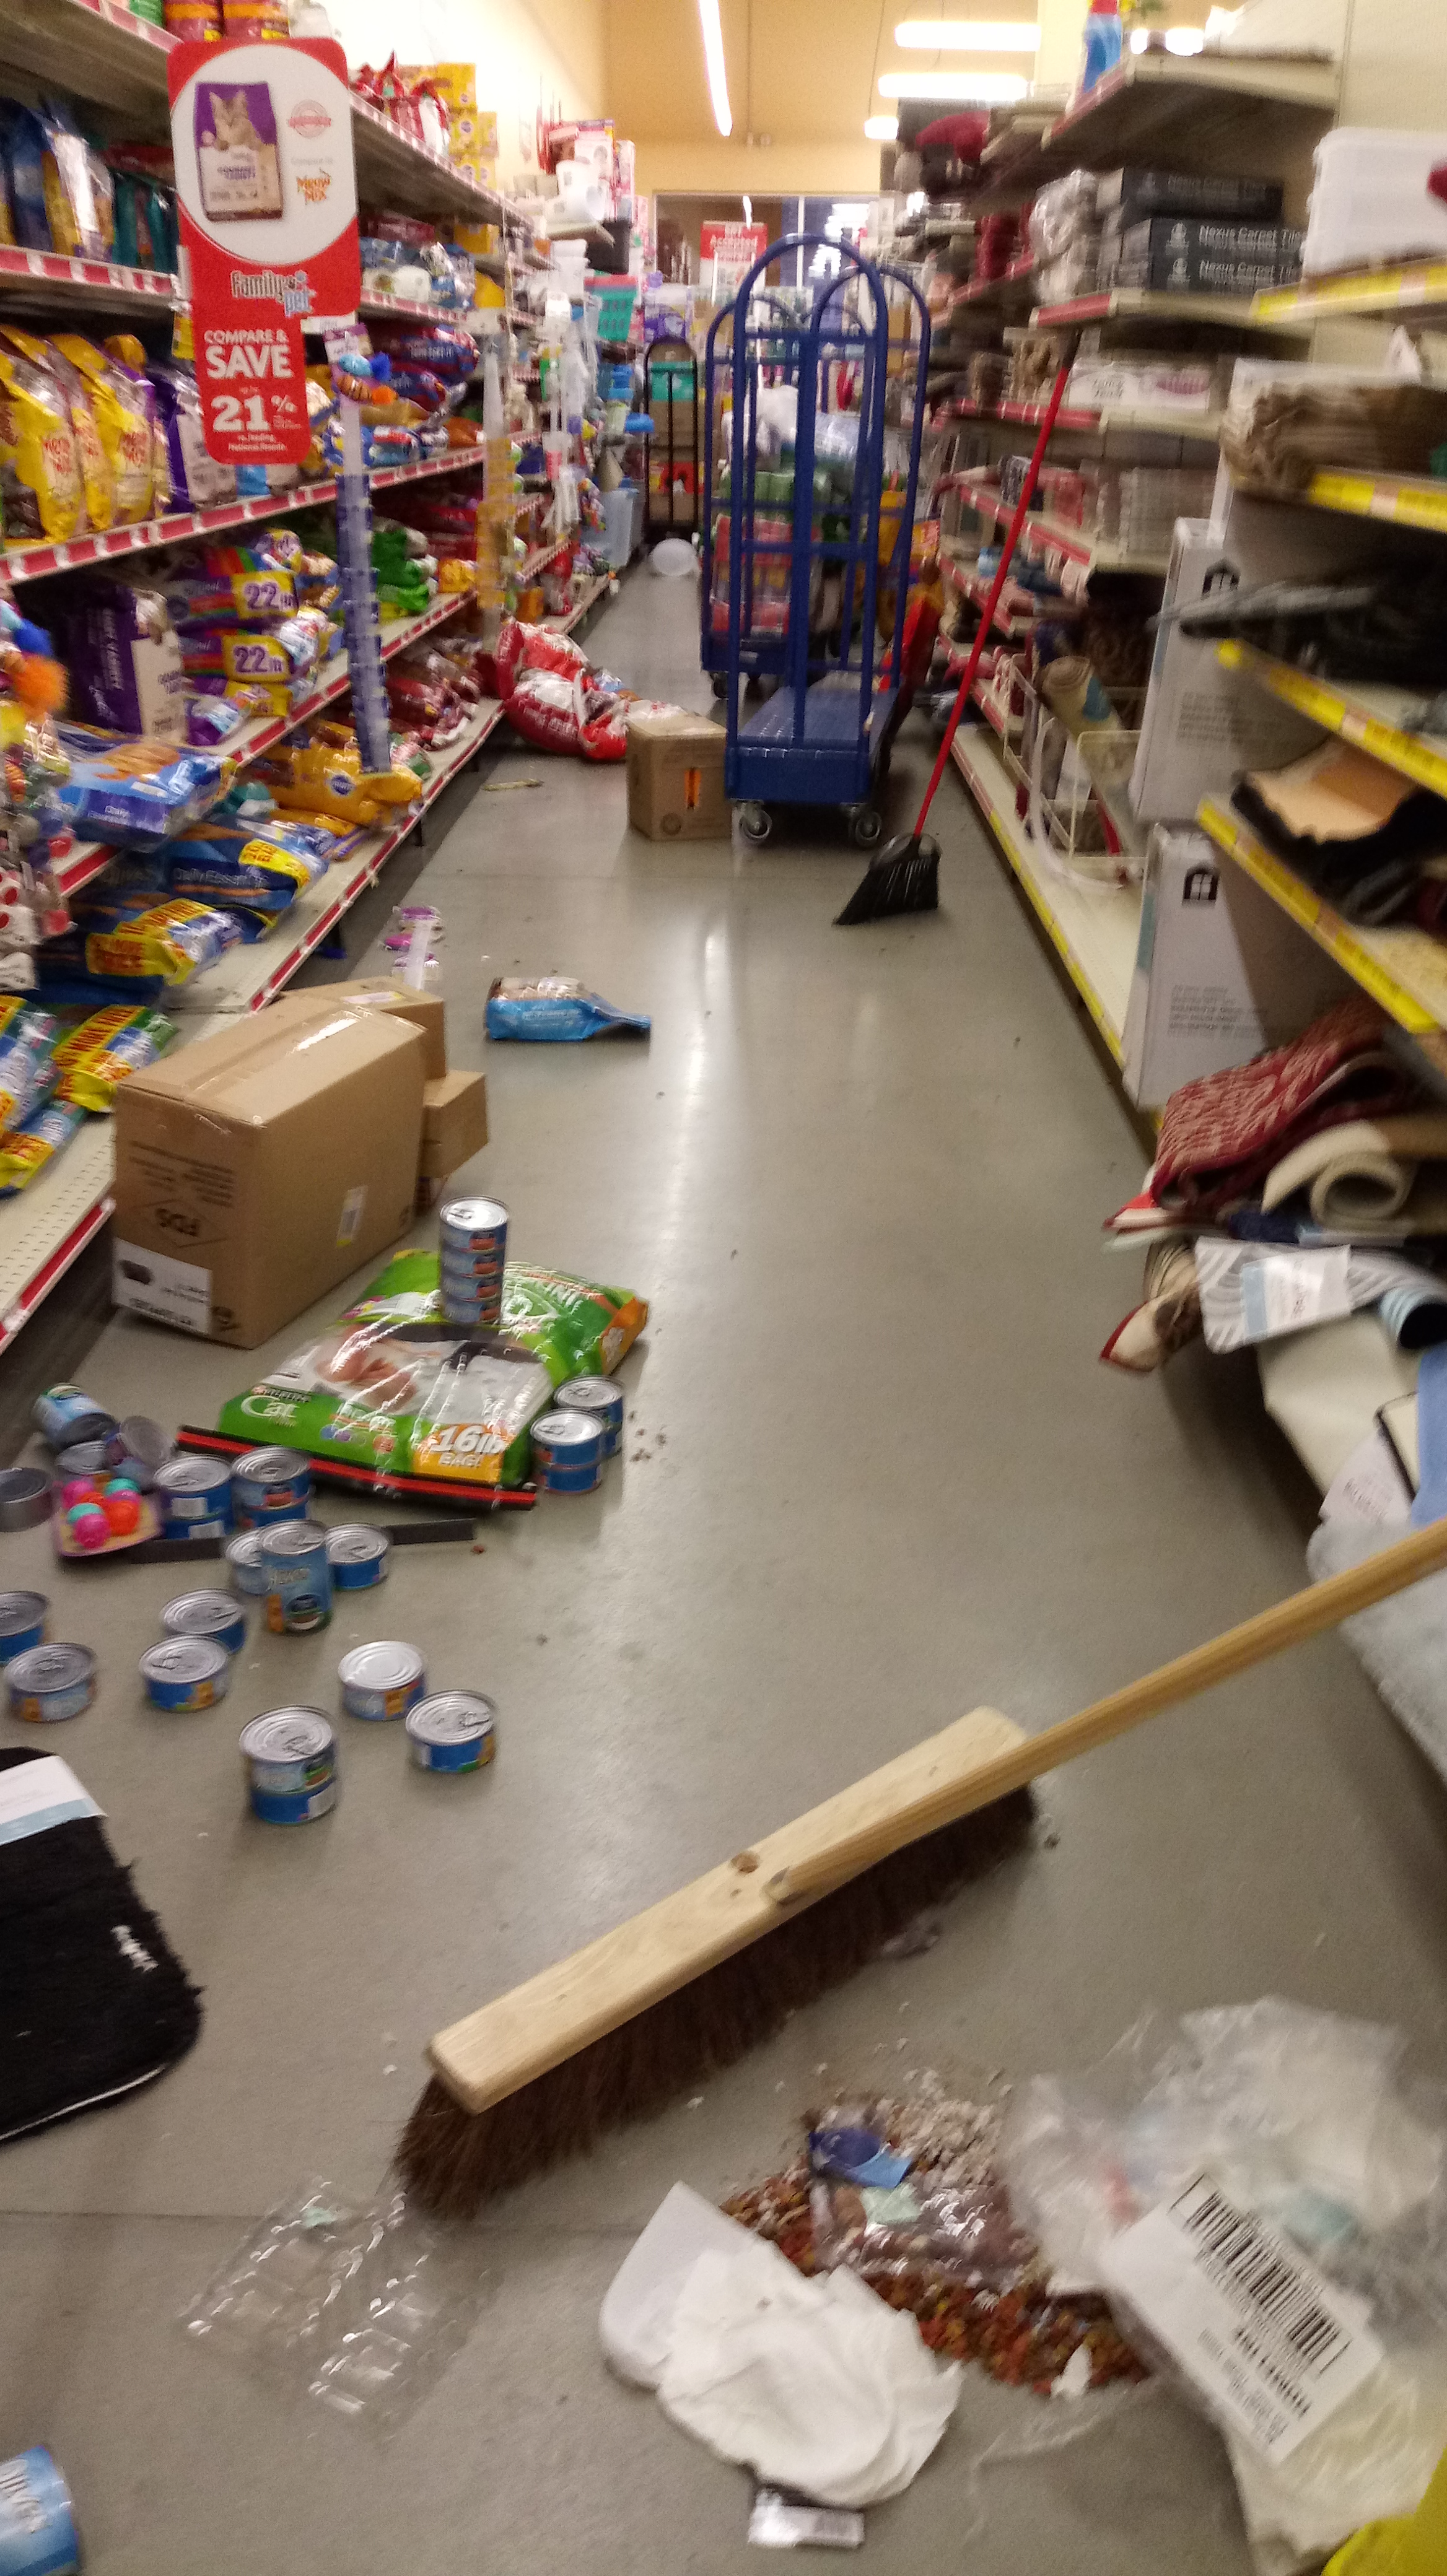 A Nasty Look Filth, clutter define local Family Dollar store